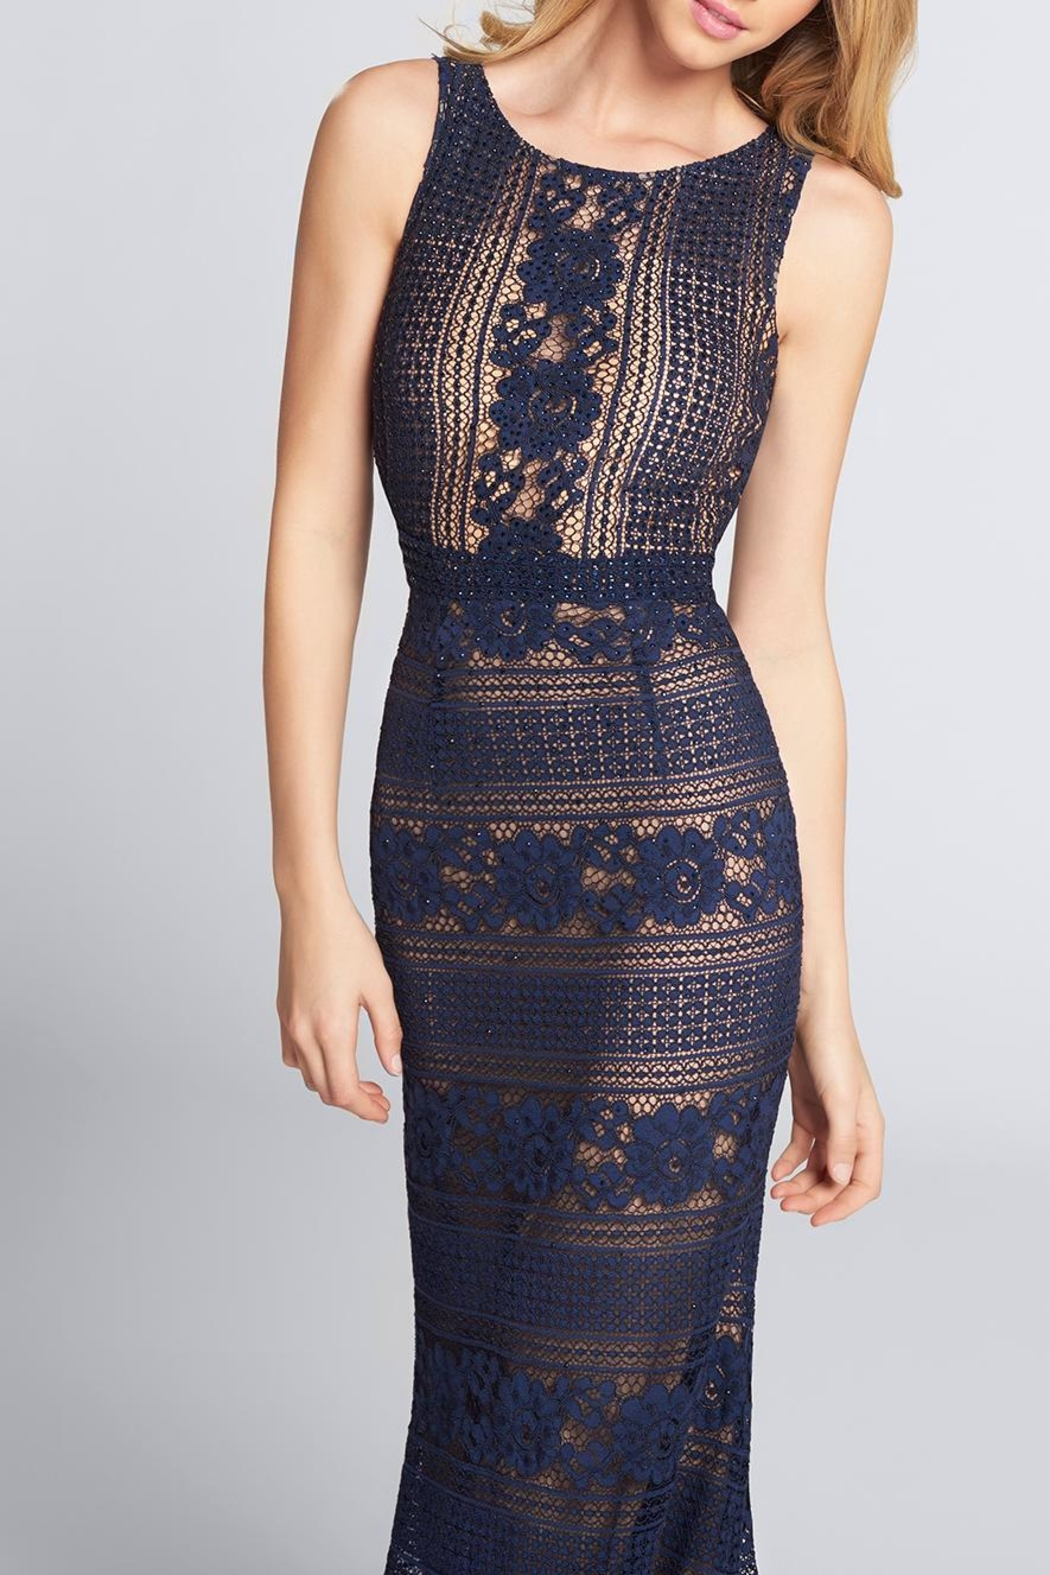 Ellie Wilde Sleeveless Lace Evening - Front Cropped Image